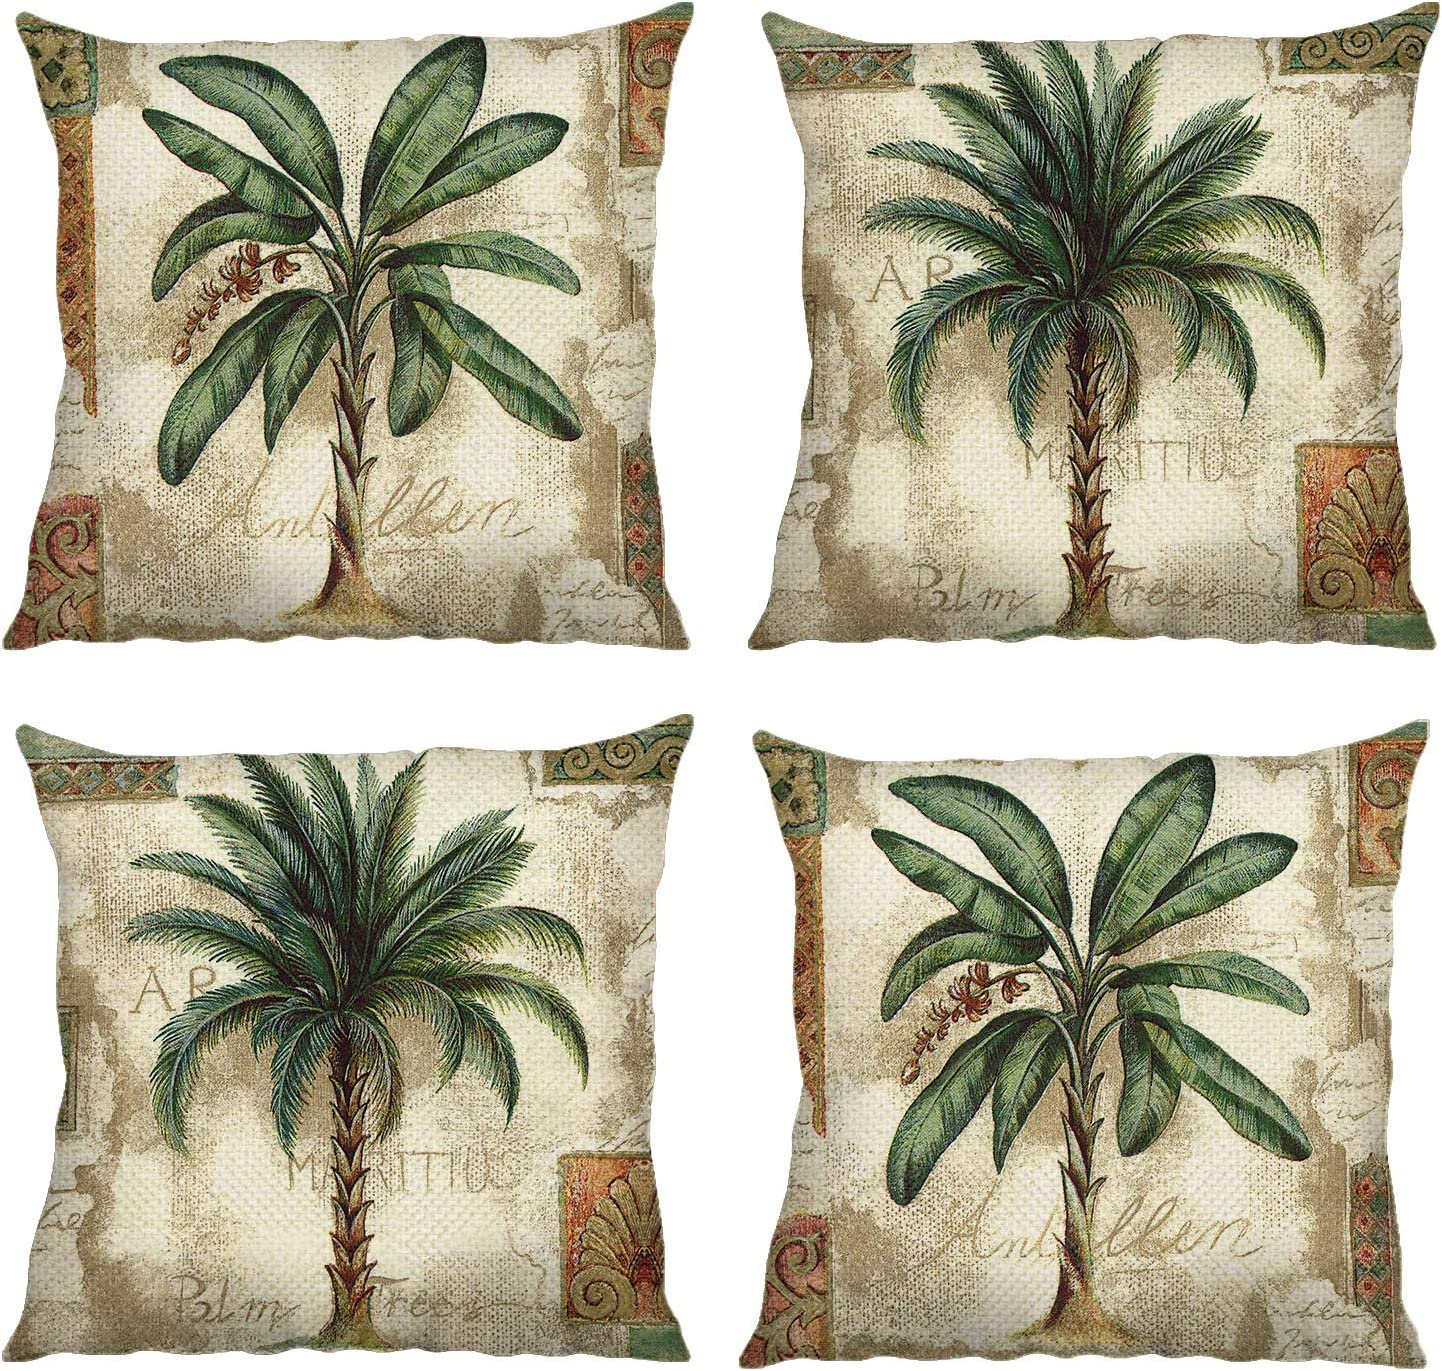 Bonhause Tropical Palm Tree Throw Pillow Covers Inch x 18 Set Sale SALE% OFF Miami Mall